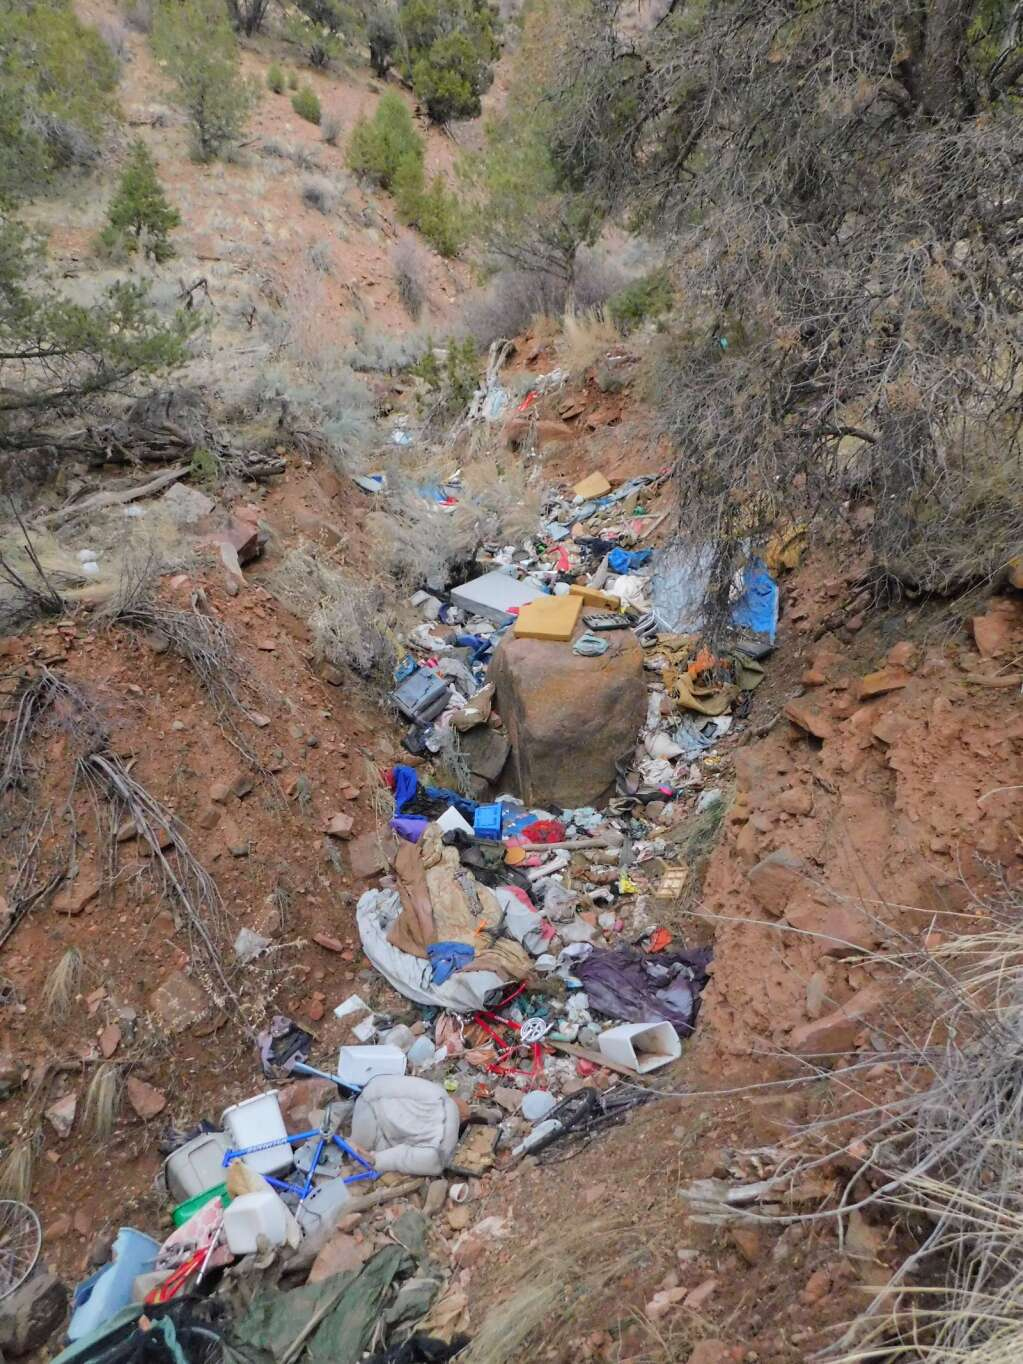 Piles of trash line the thickets and ravines on the hillside east of Walmart in Glenwood Springs where homeless camps have been located for several years.